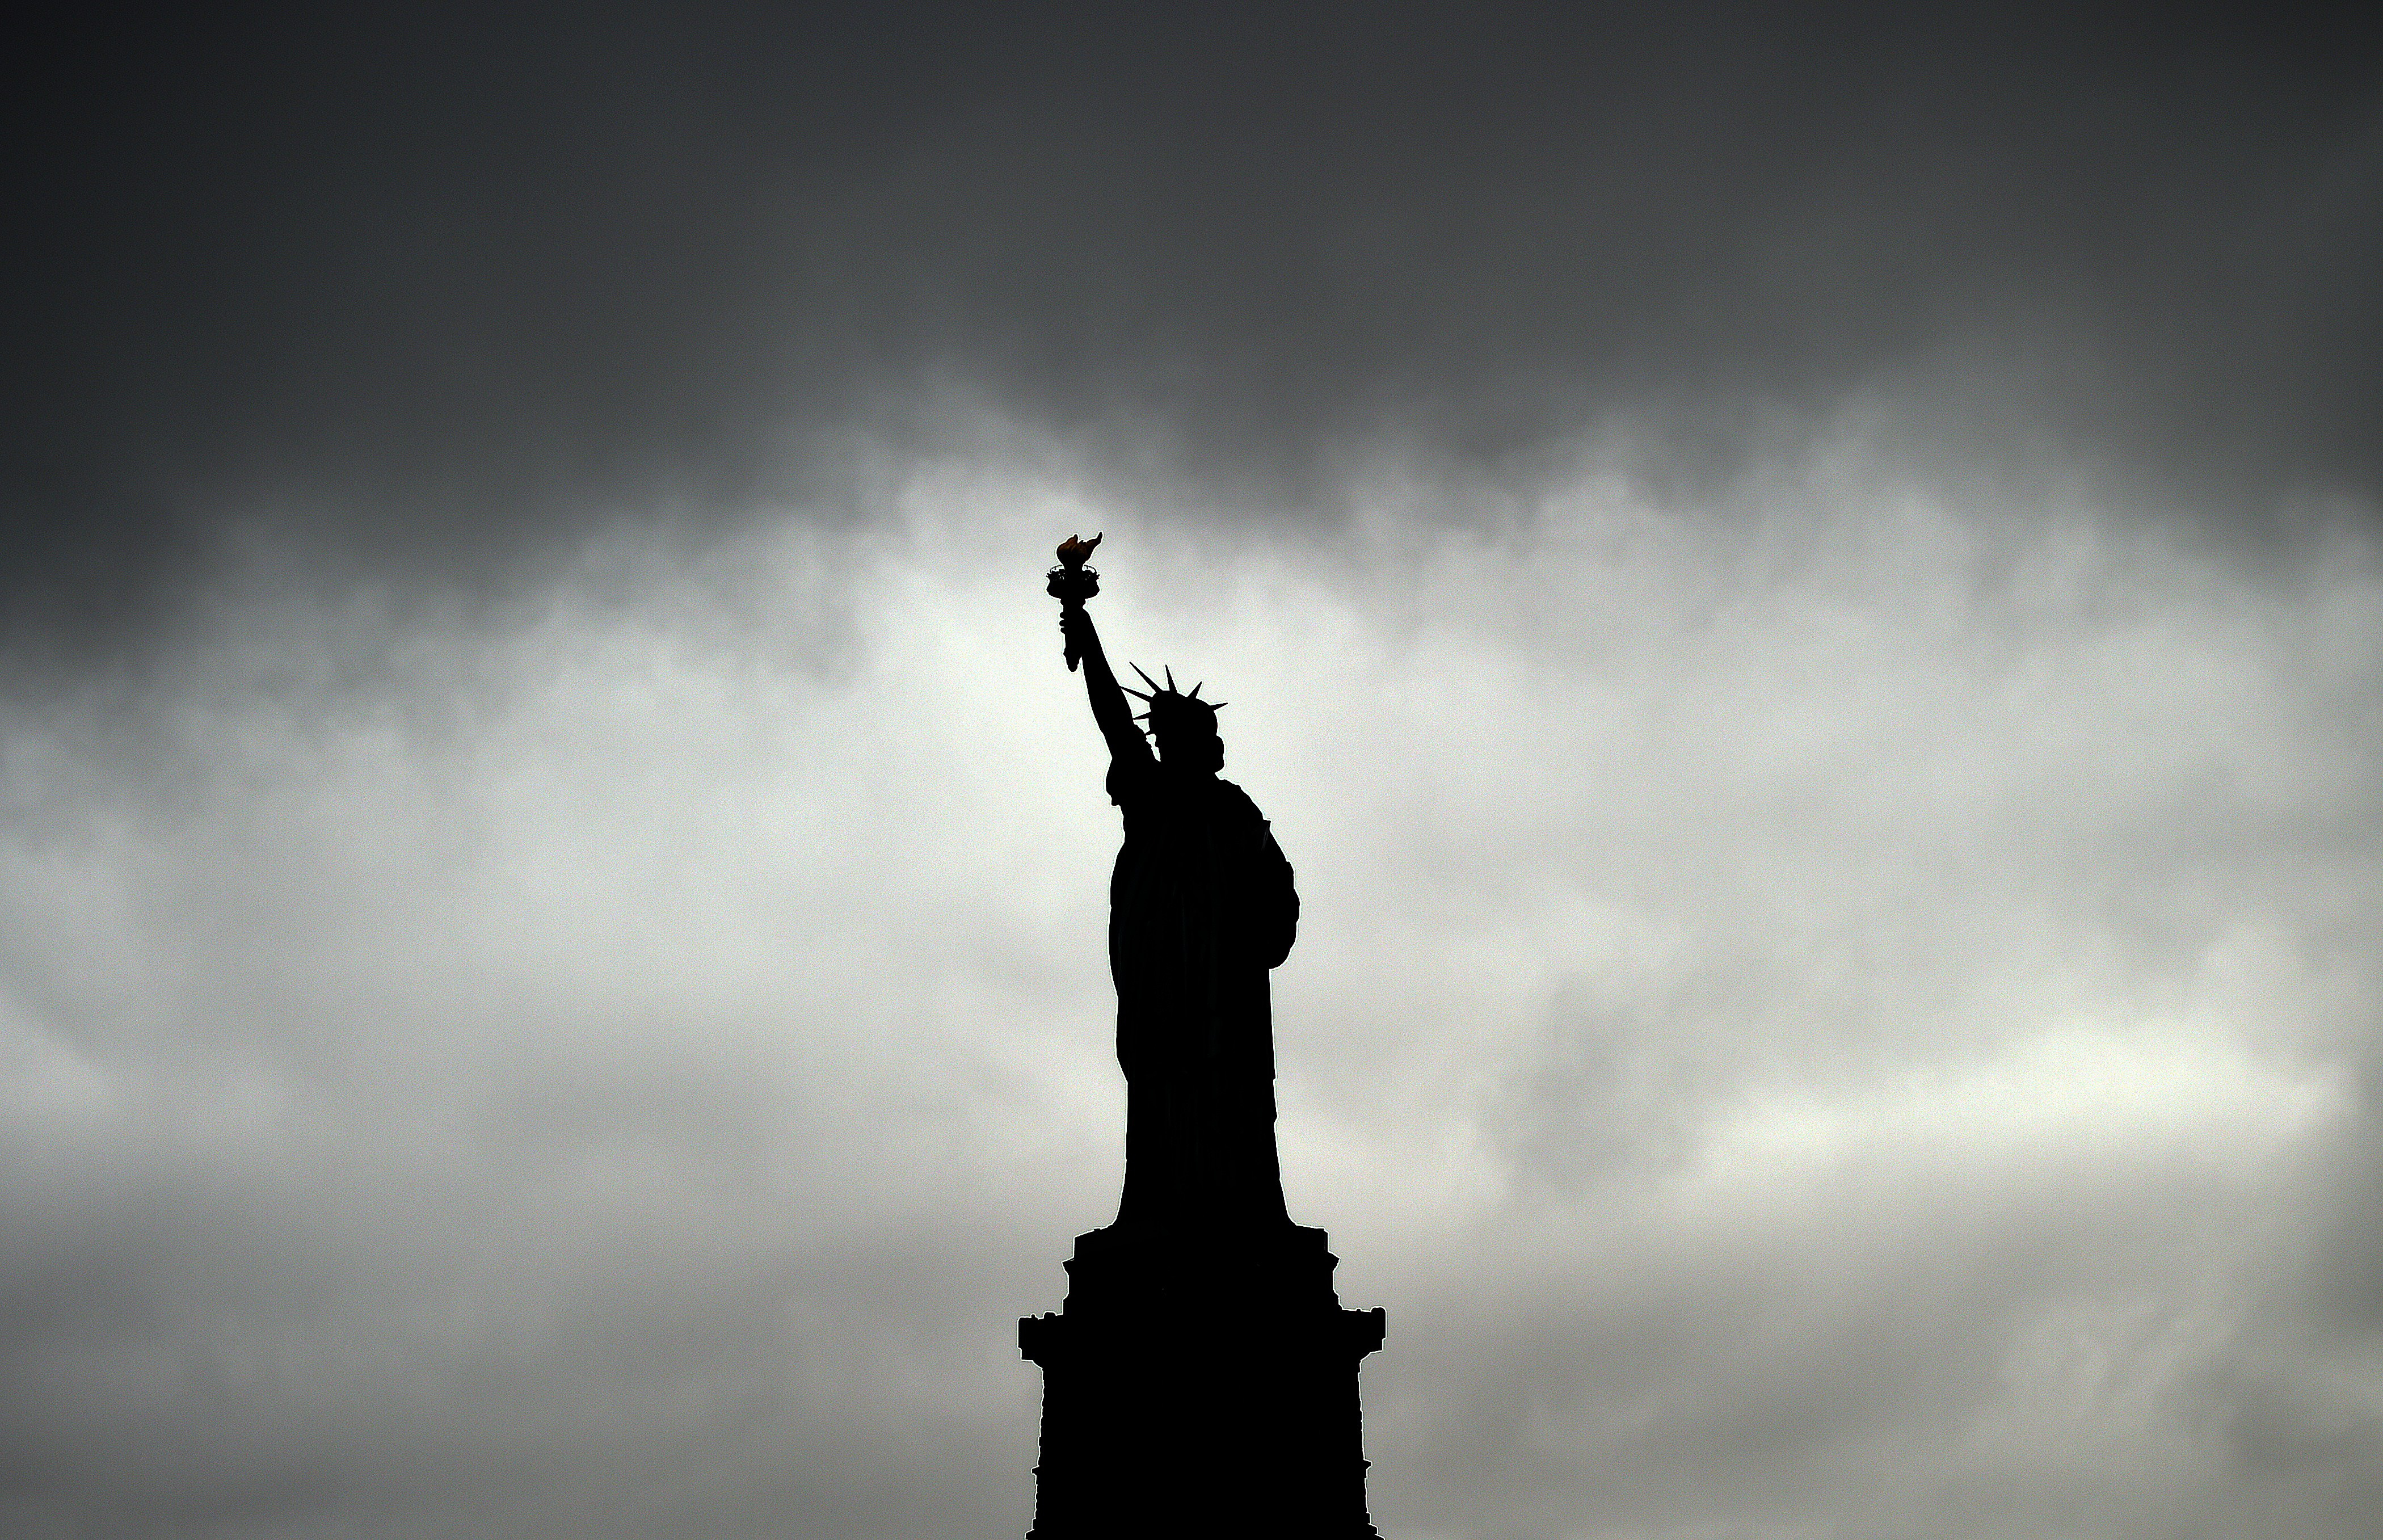 The State of Liberty is pictured during a rainy day on Oct. 16, 2014 in New York.